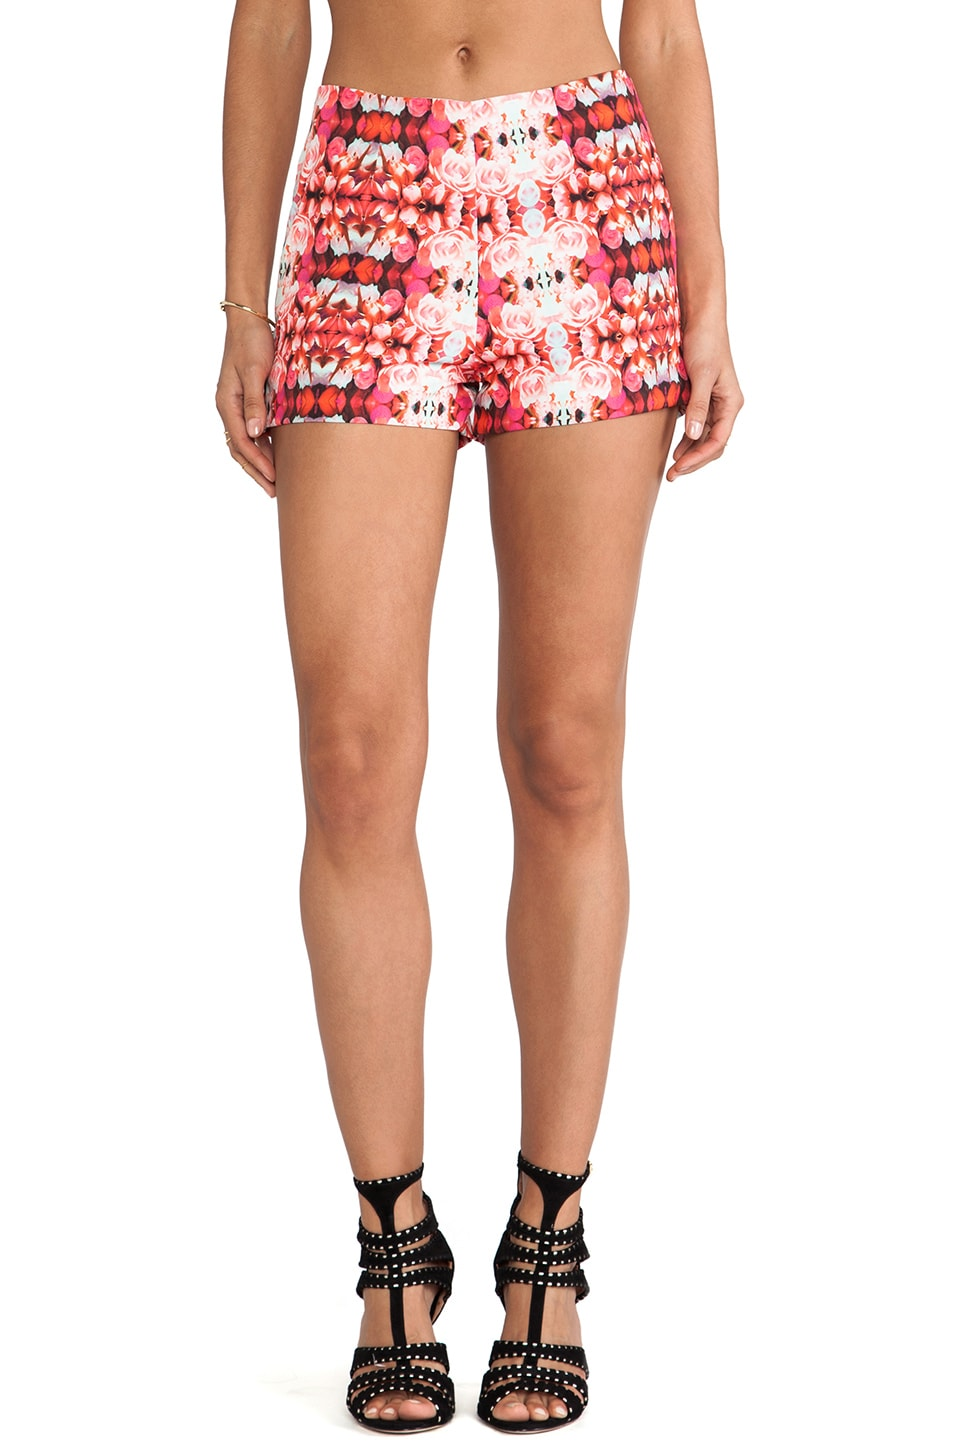 Naven Hot Shorts in Rose Kaleidoscope